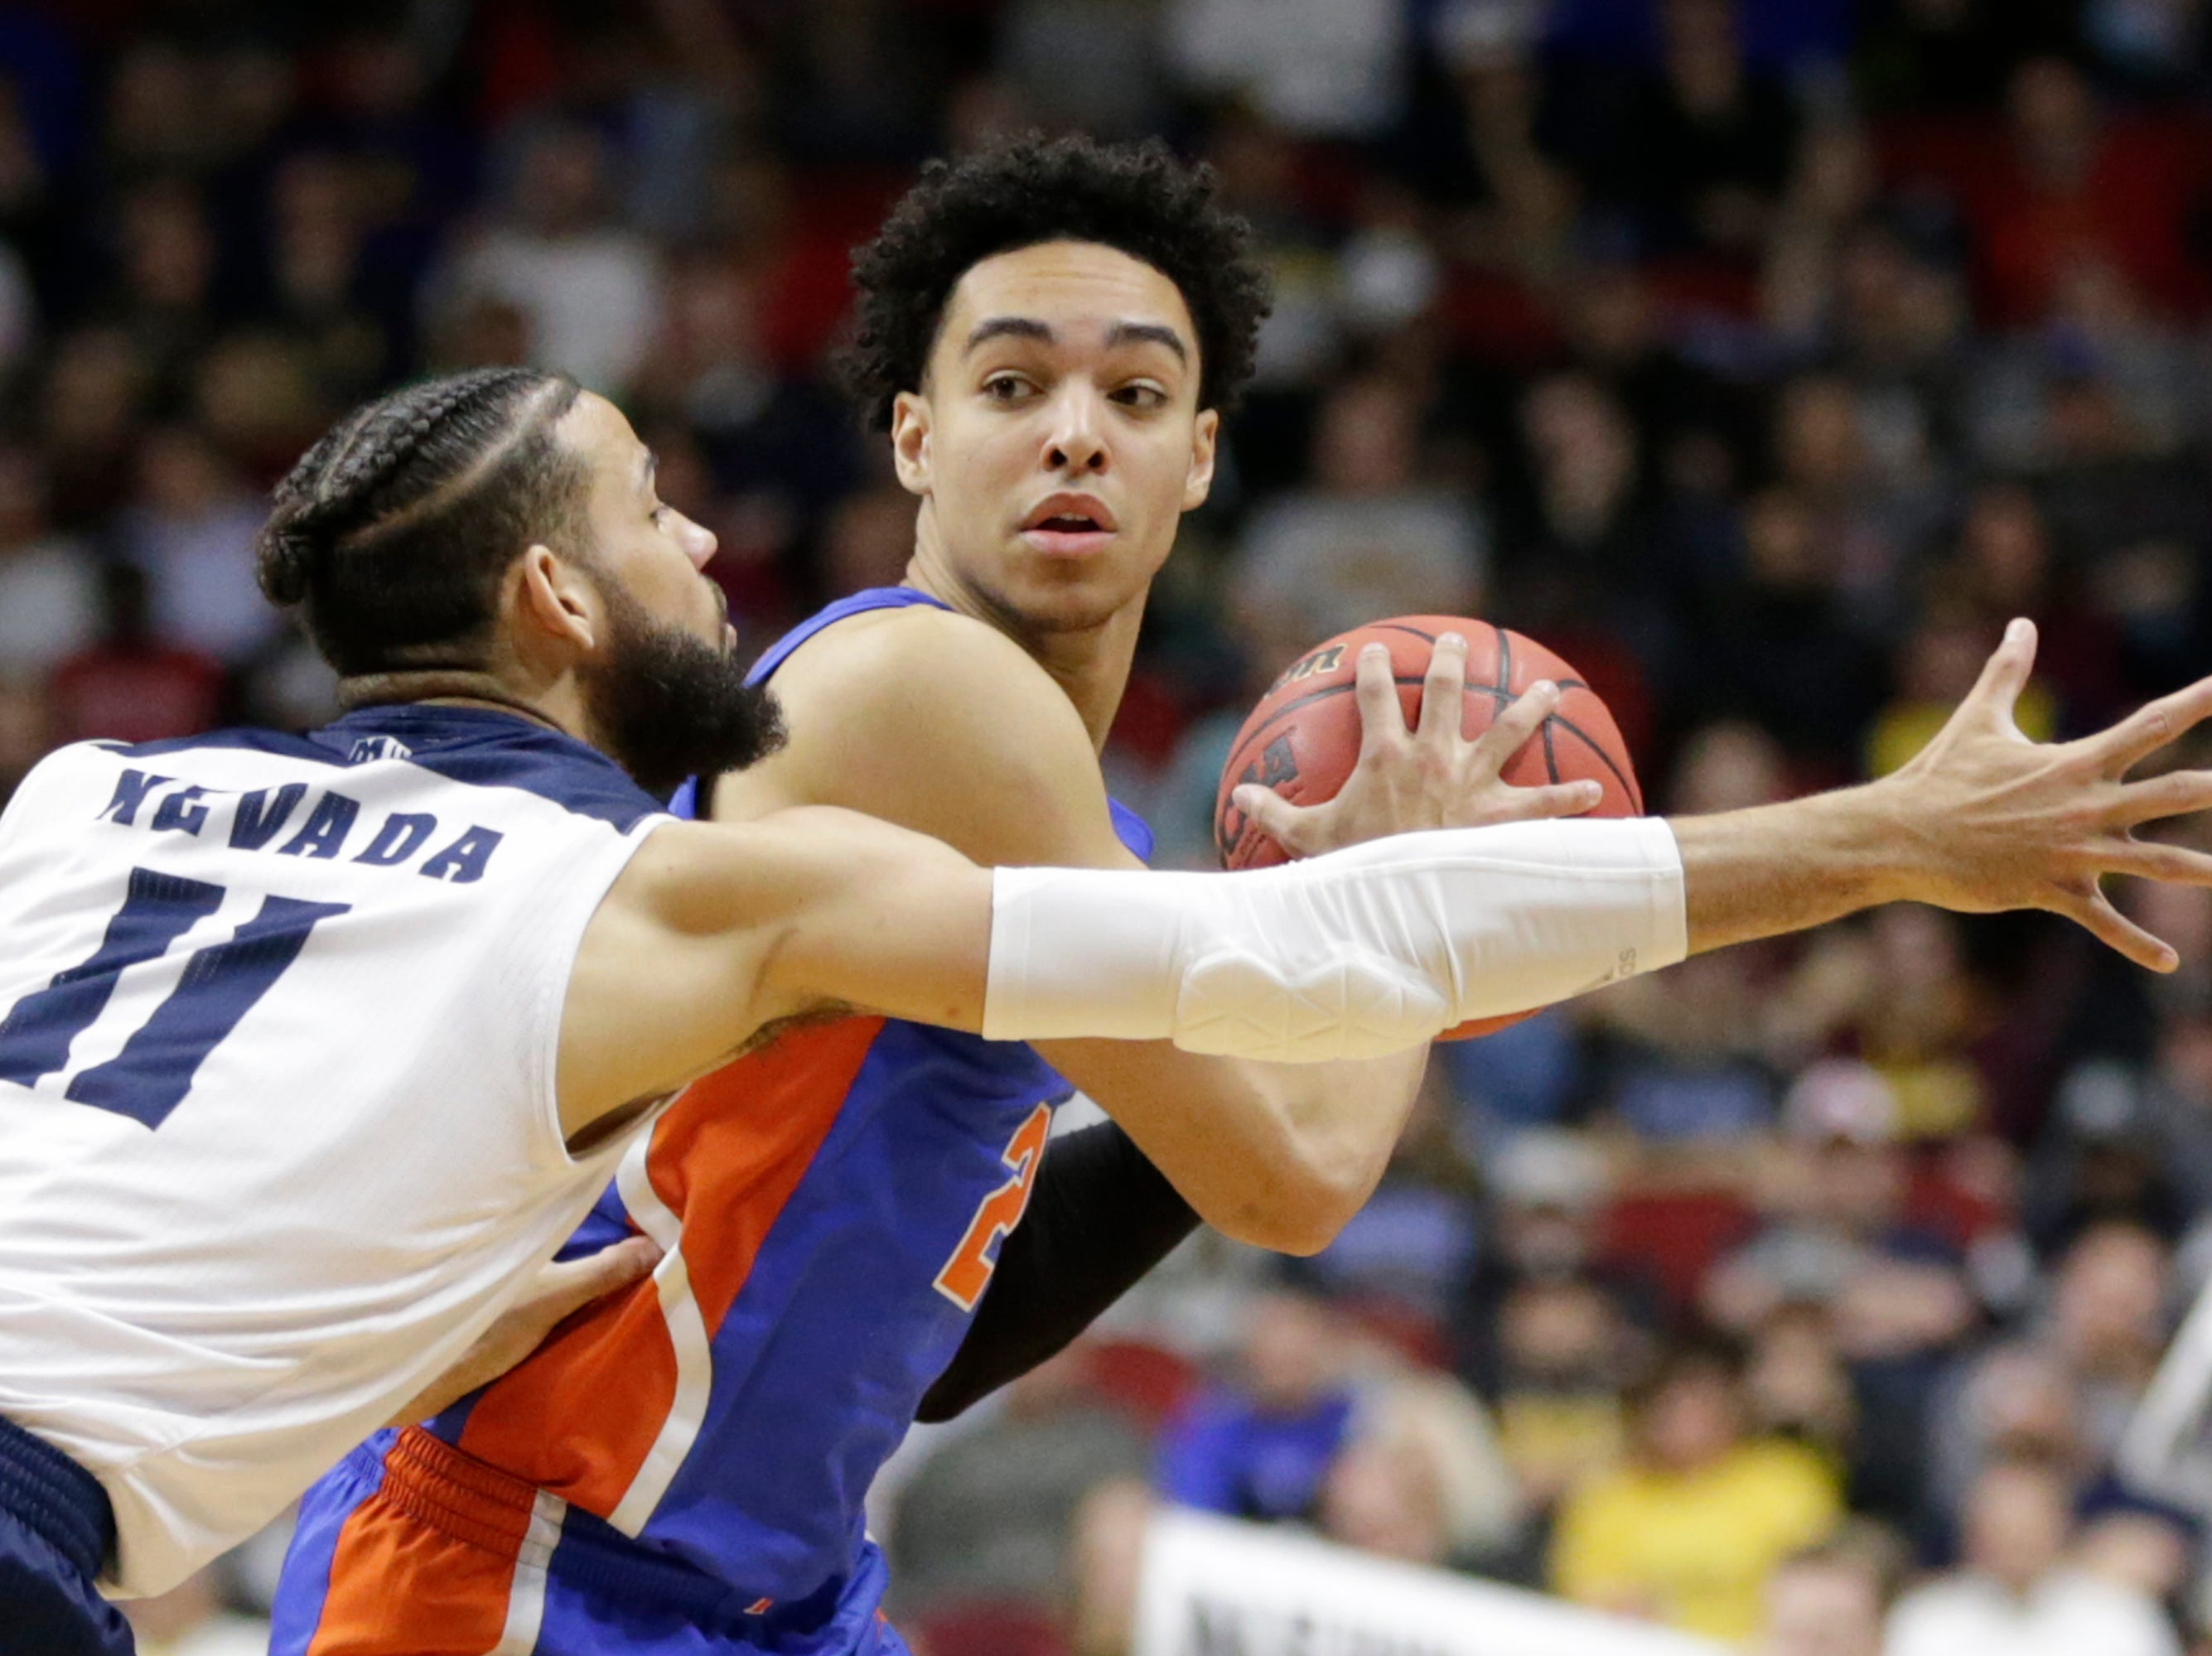 Florida's Andrew Nembhard, right, is defended by Nevada's Cody Martin (11) during the second half of a first round men's college basketball game in the NCAA Tournament in Des Moines, Iowa, Thursday, March 21, 2019. (AP Photo/Nati Harnik)